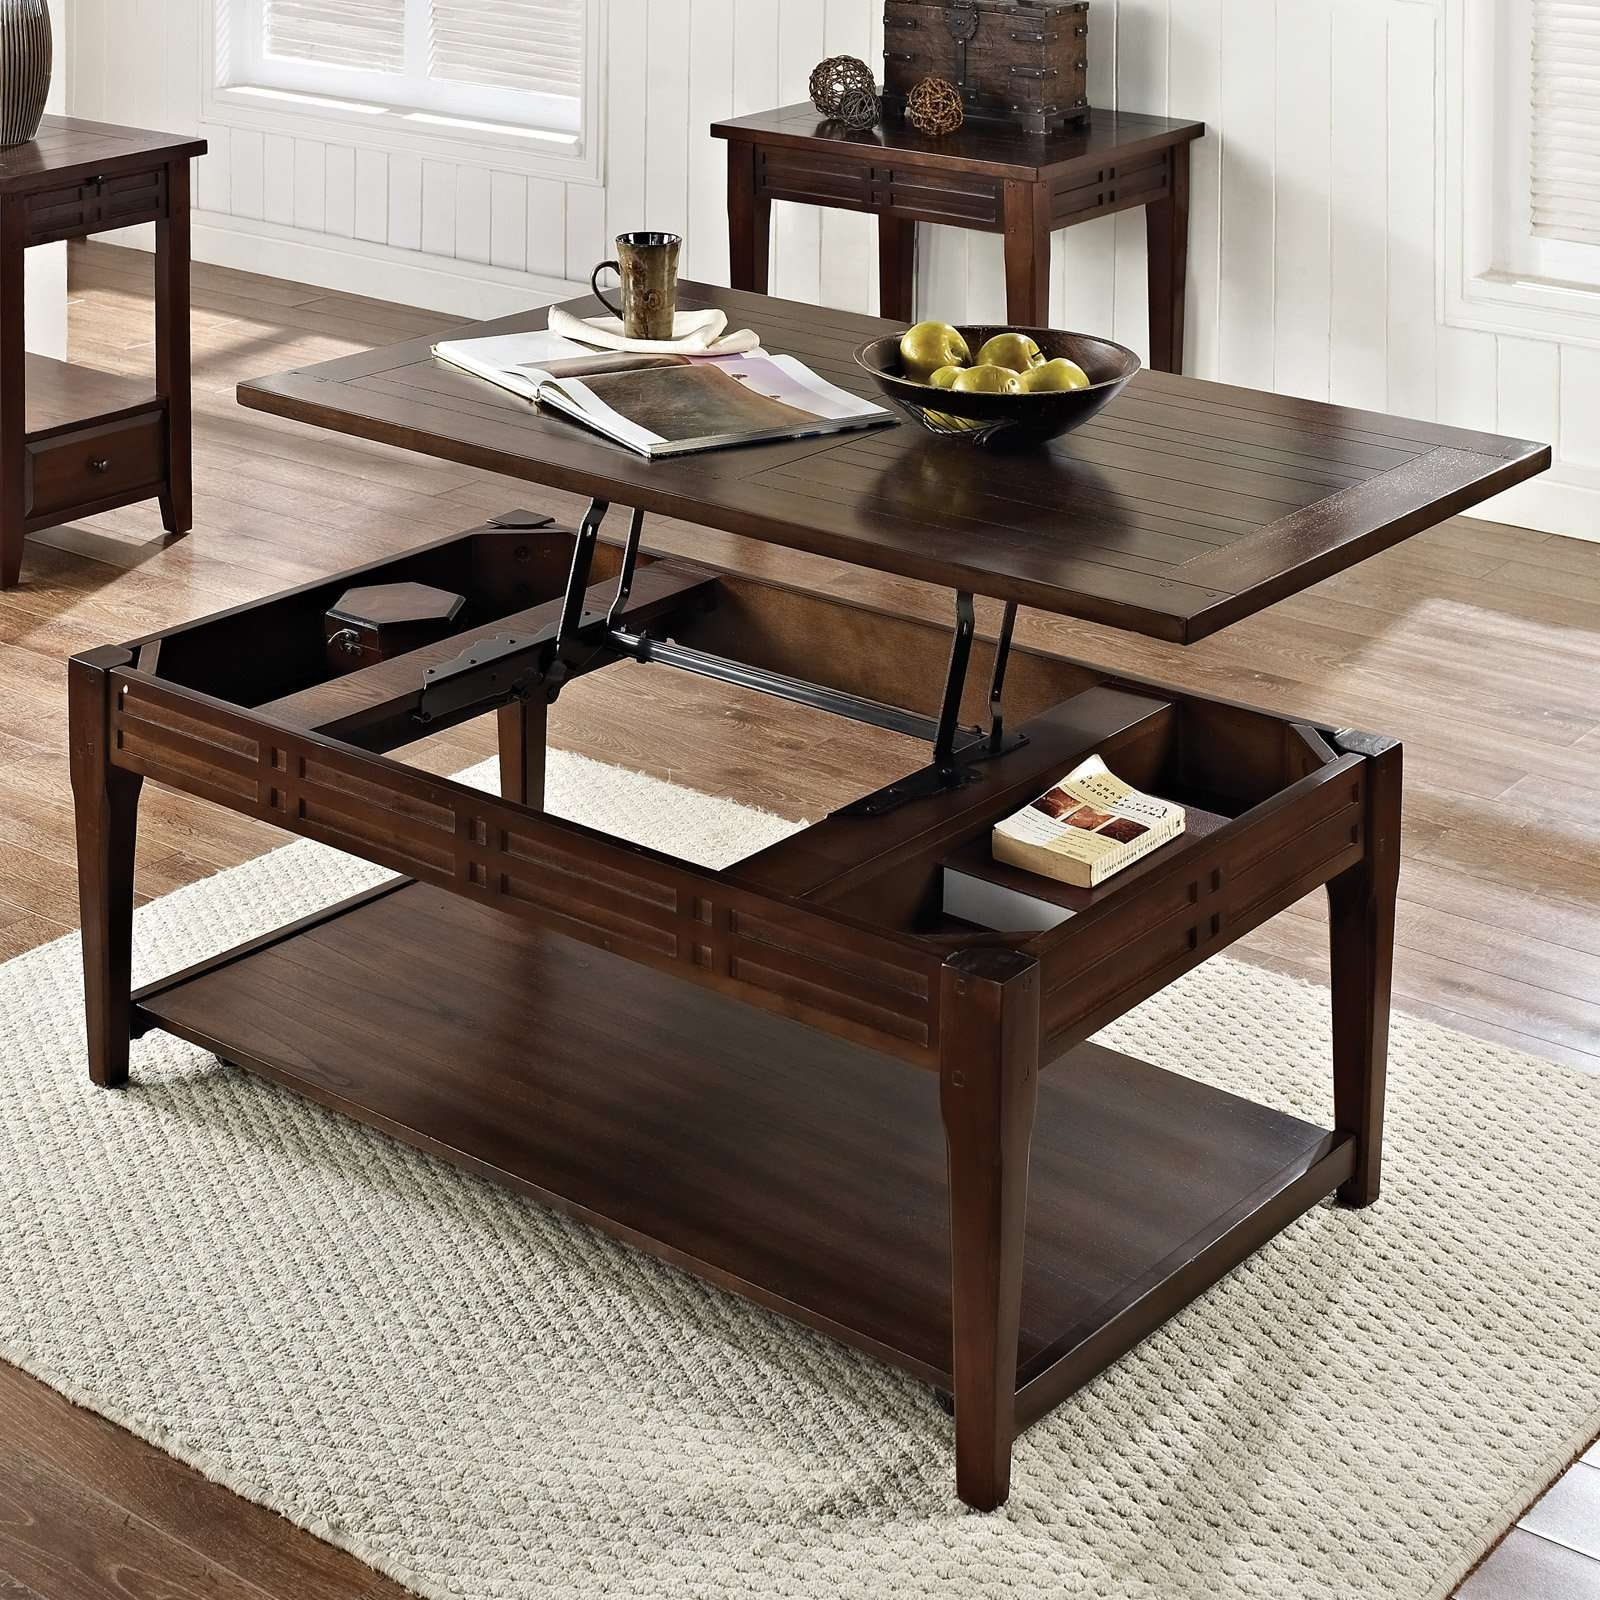 Fashionable Coffee Tables With Lift Top And Storage Inside Turner Lift Top Coffee Table – Espresso (View 18 of 20)